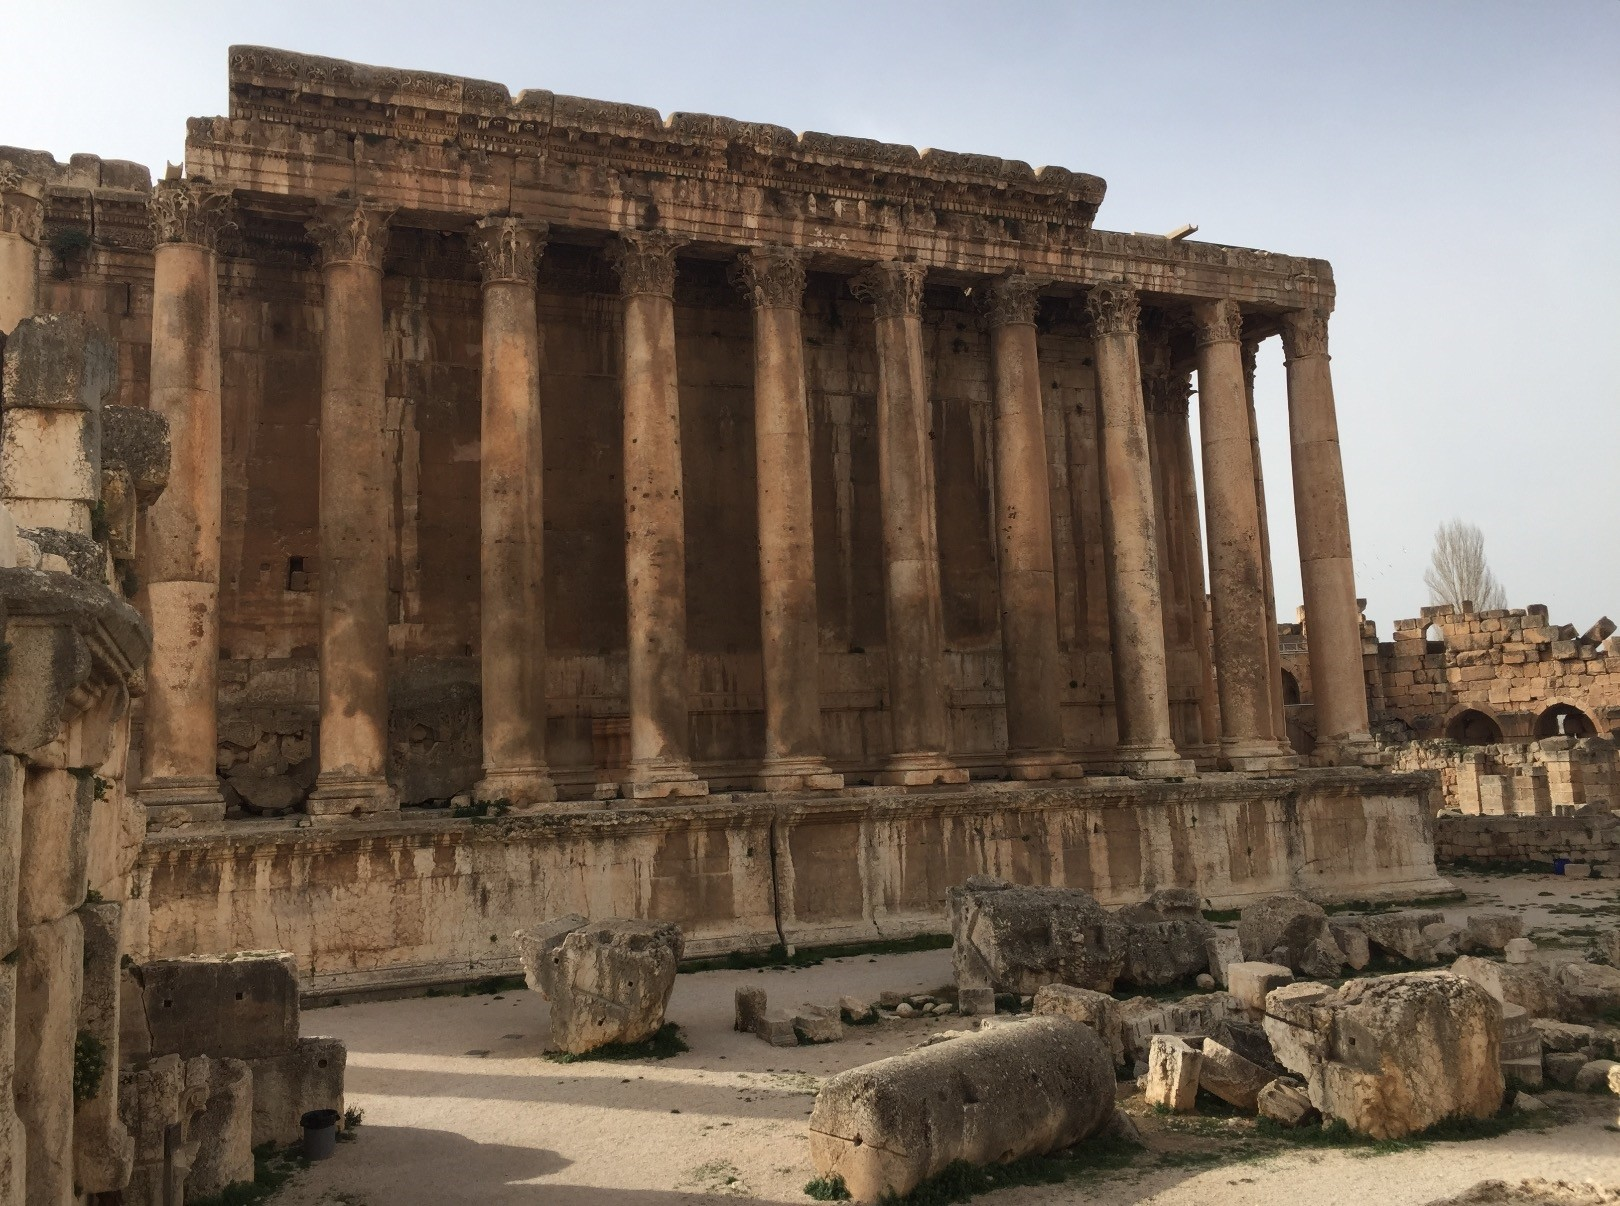 The ancient ruins of Baalbek